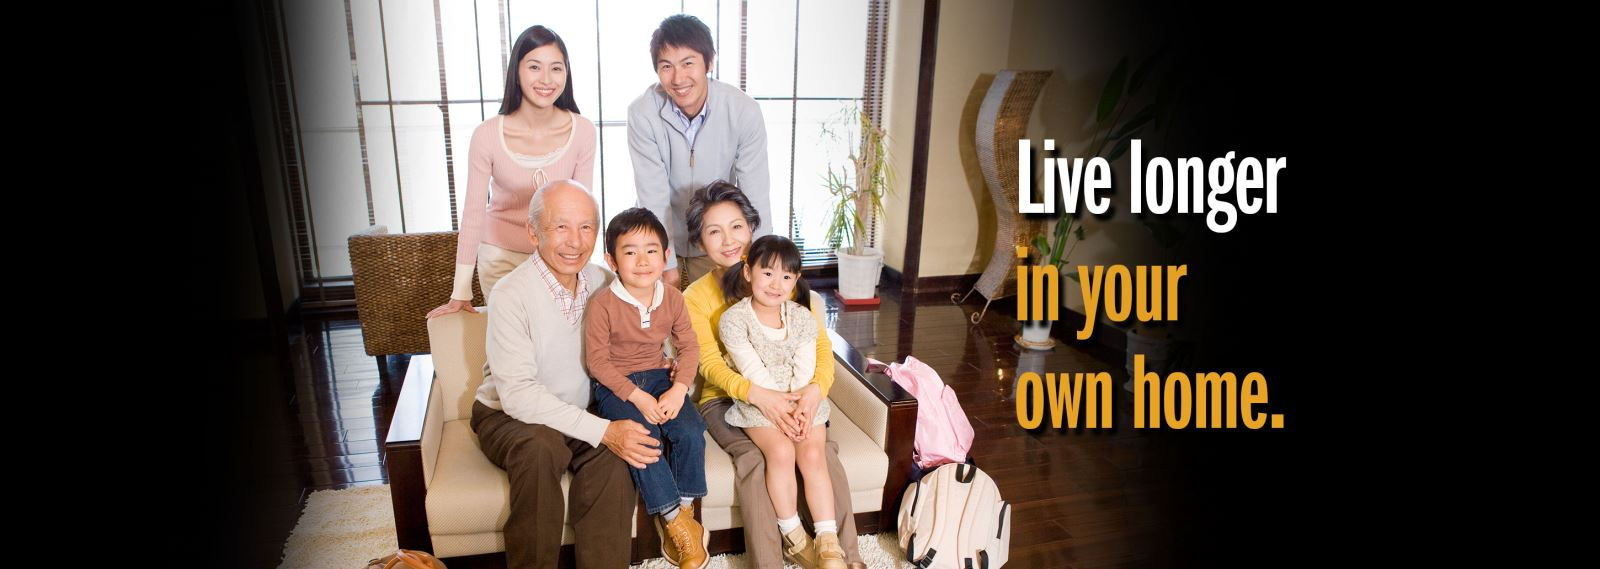 Live Longer in your own home